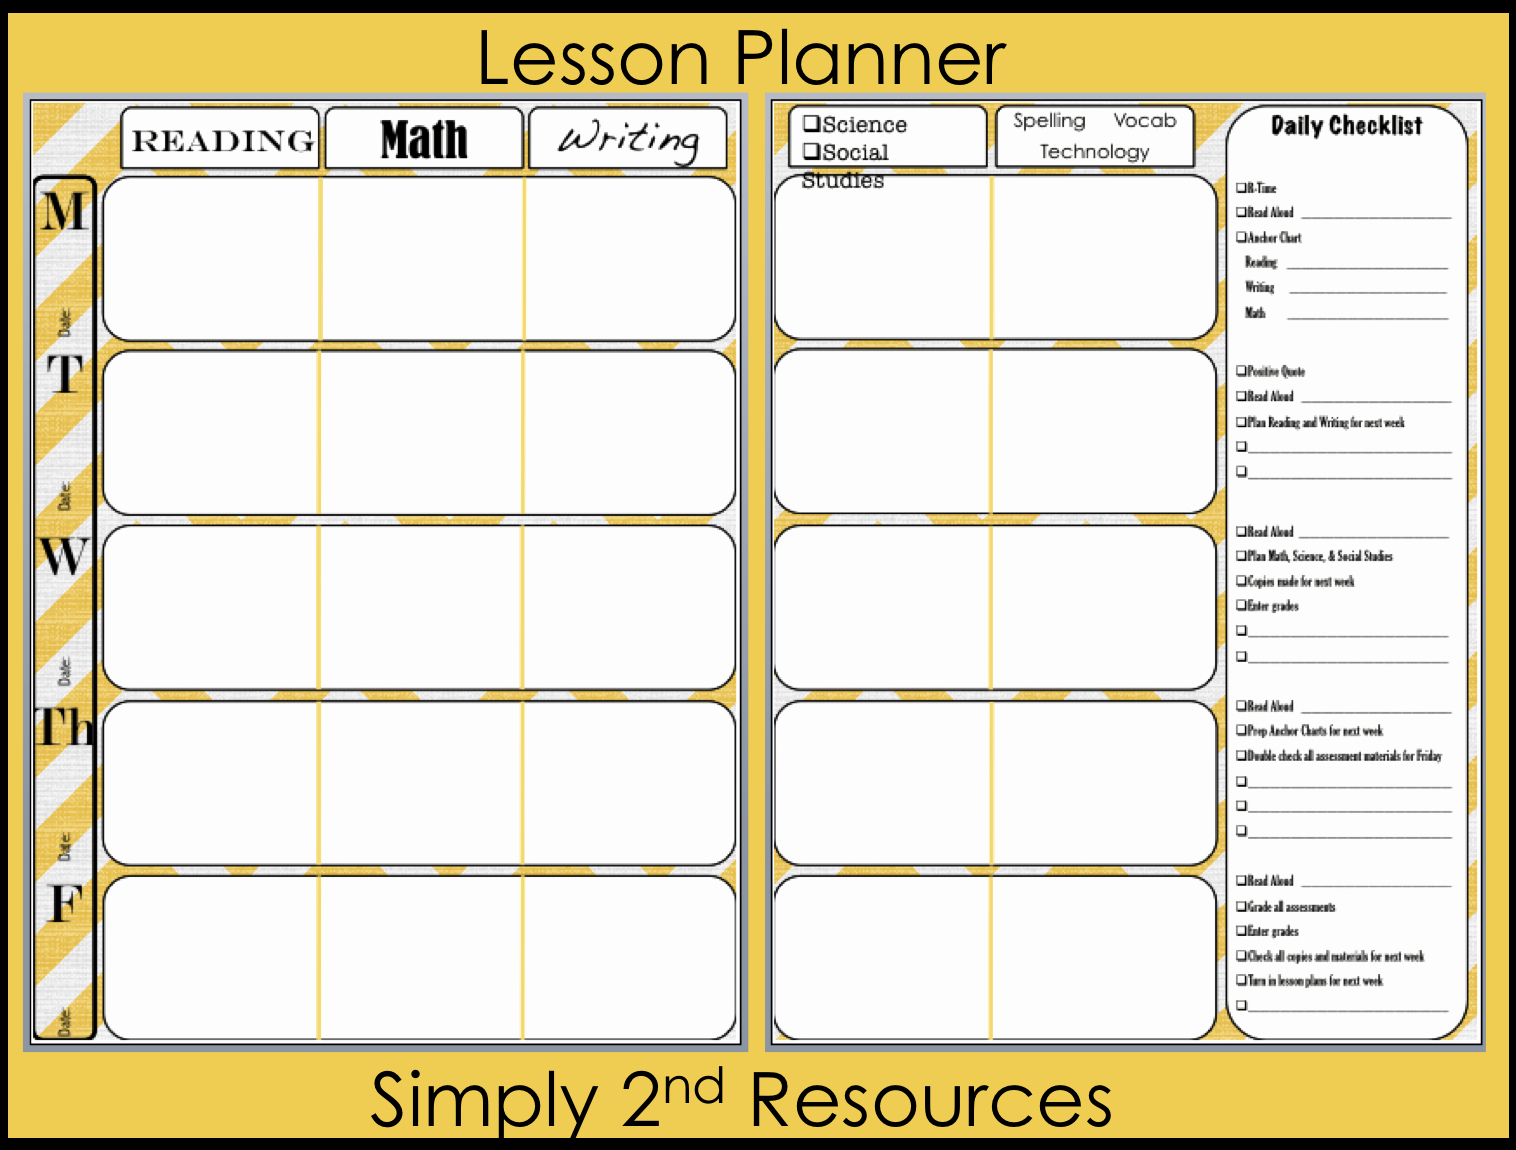 2nd Grade Lesson Plan Template Elegant Simply 2nd Resources Lesson Plan Template so Excited to